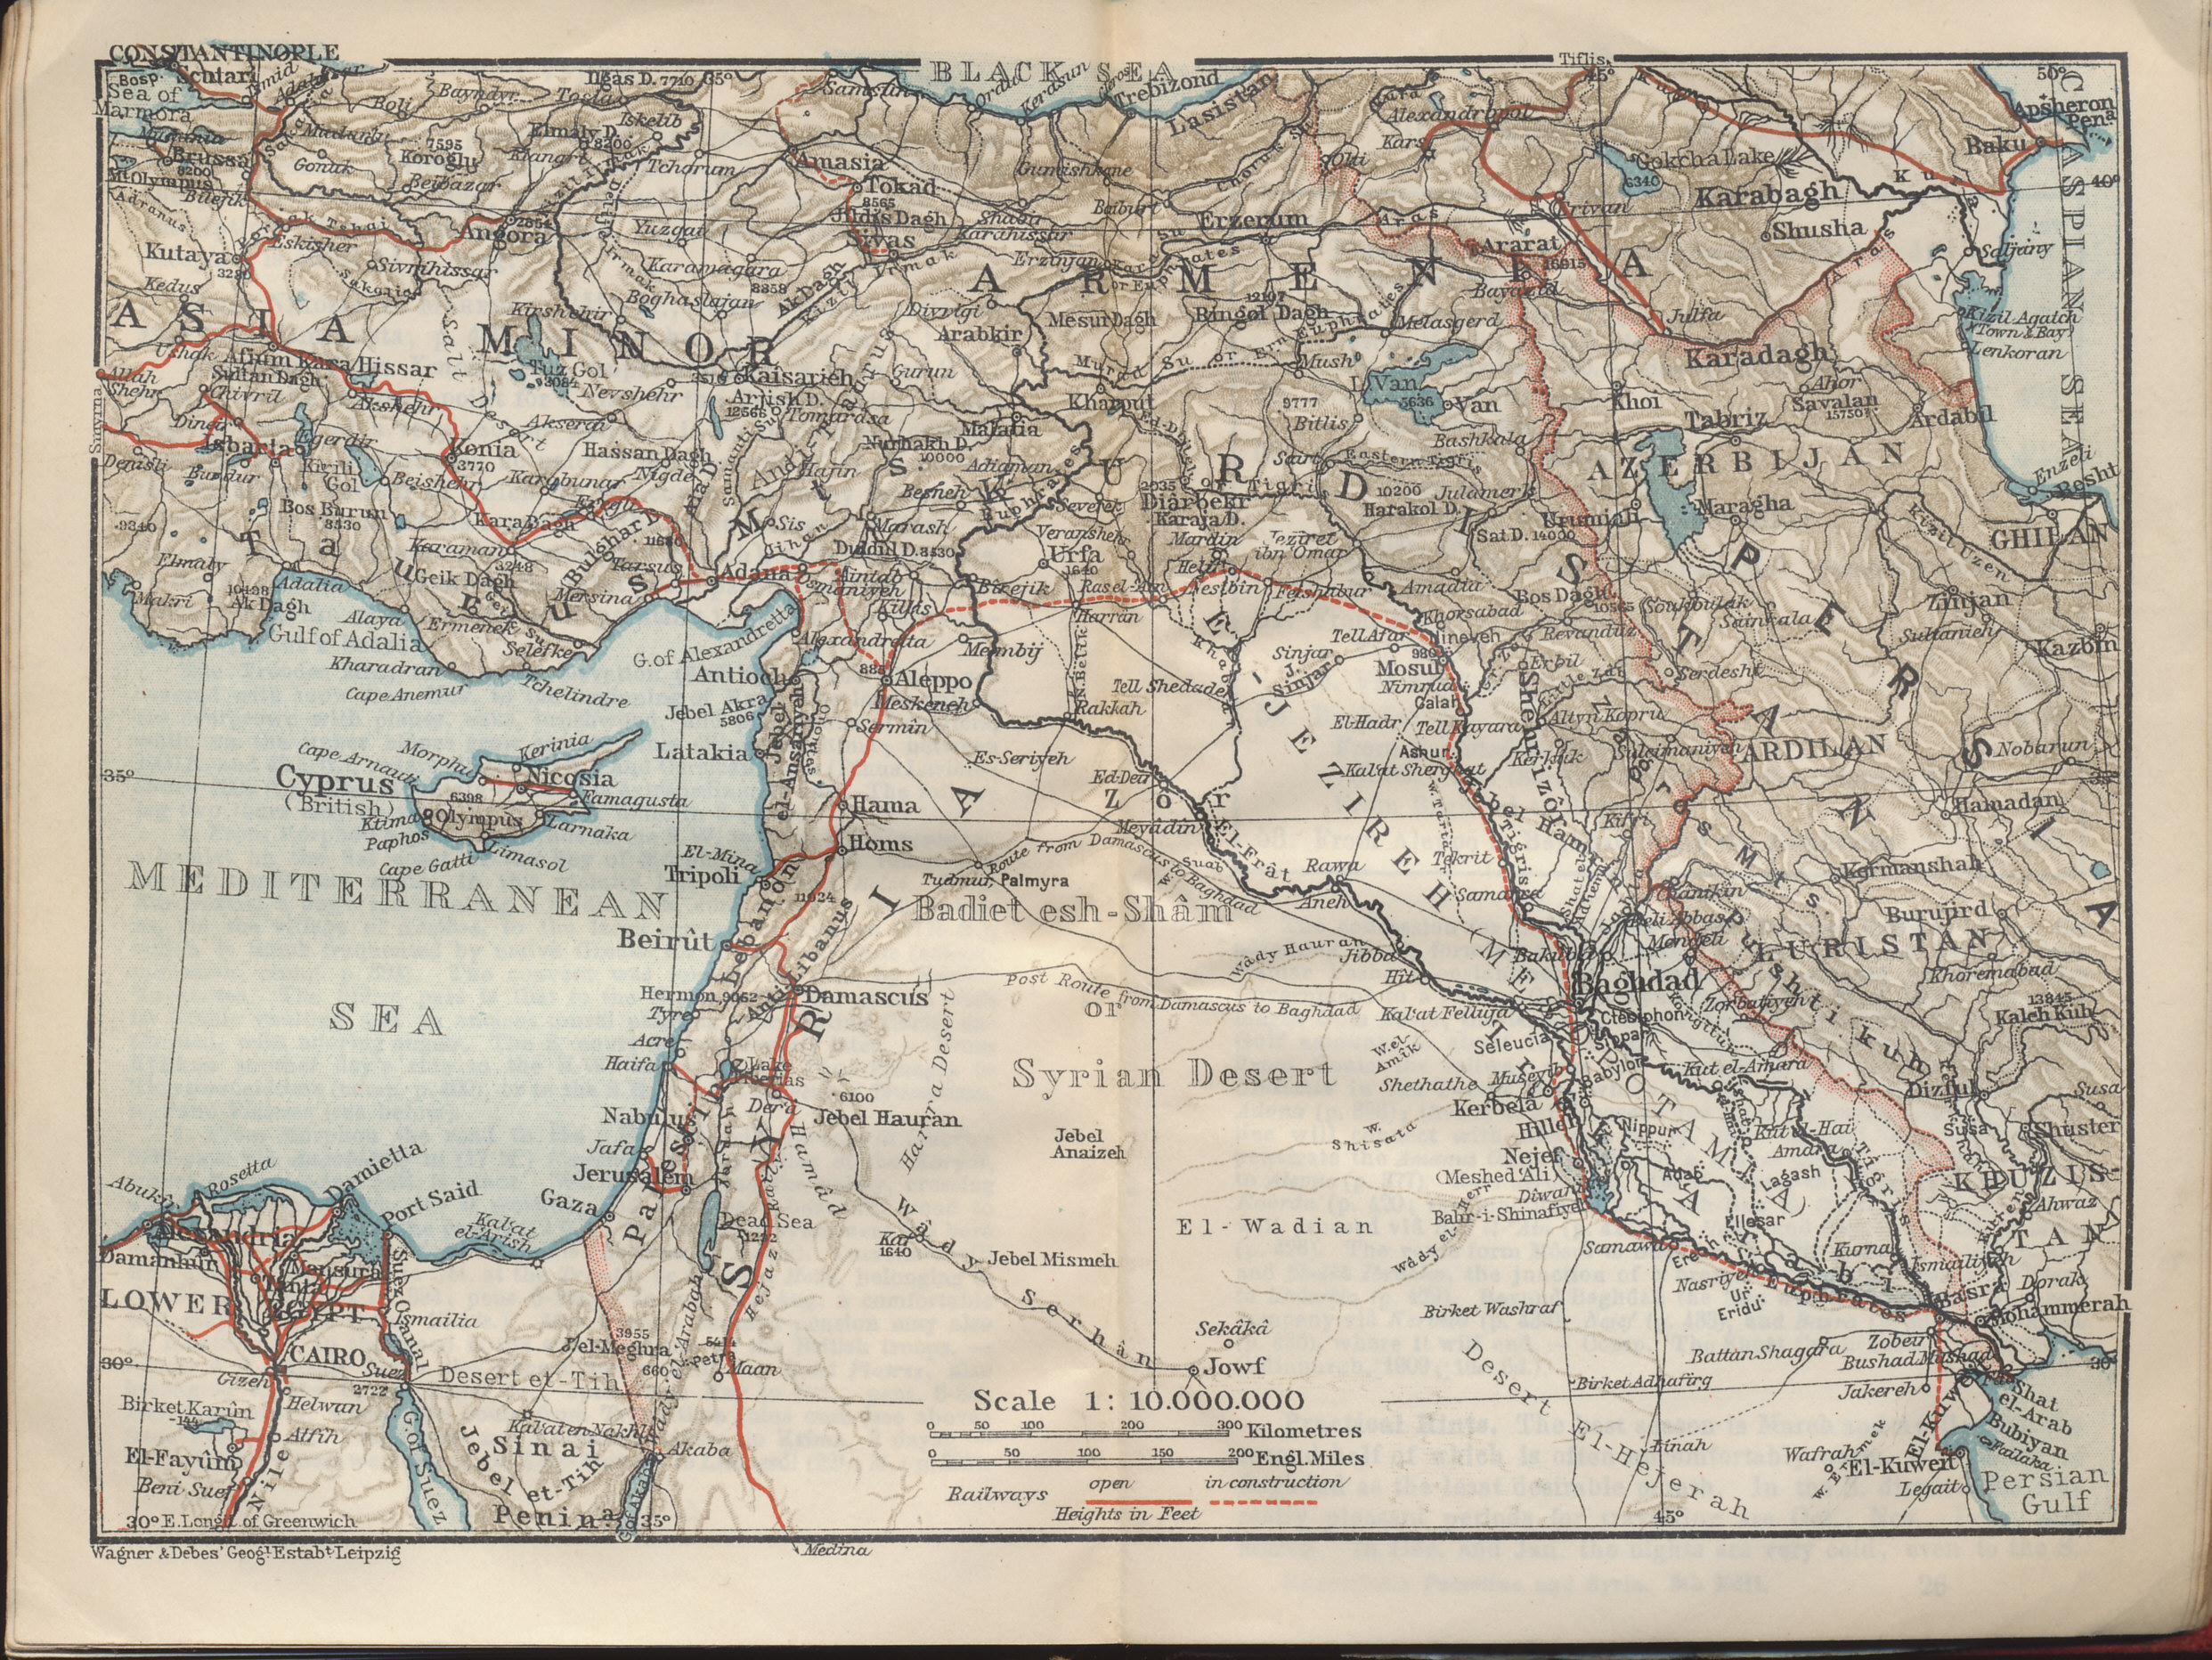 Map of Syria, Palestine, and Turkey from the Baedeker 1912 travel guide Palestine and Syria with Routes through Mesopotamia and Babylonia and with the Island of Cyprus.